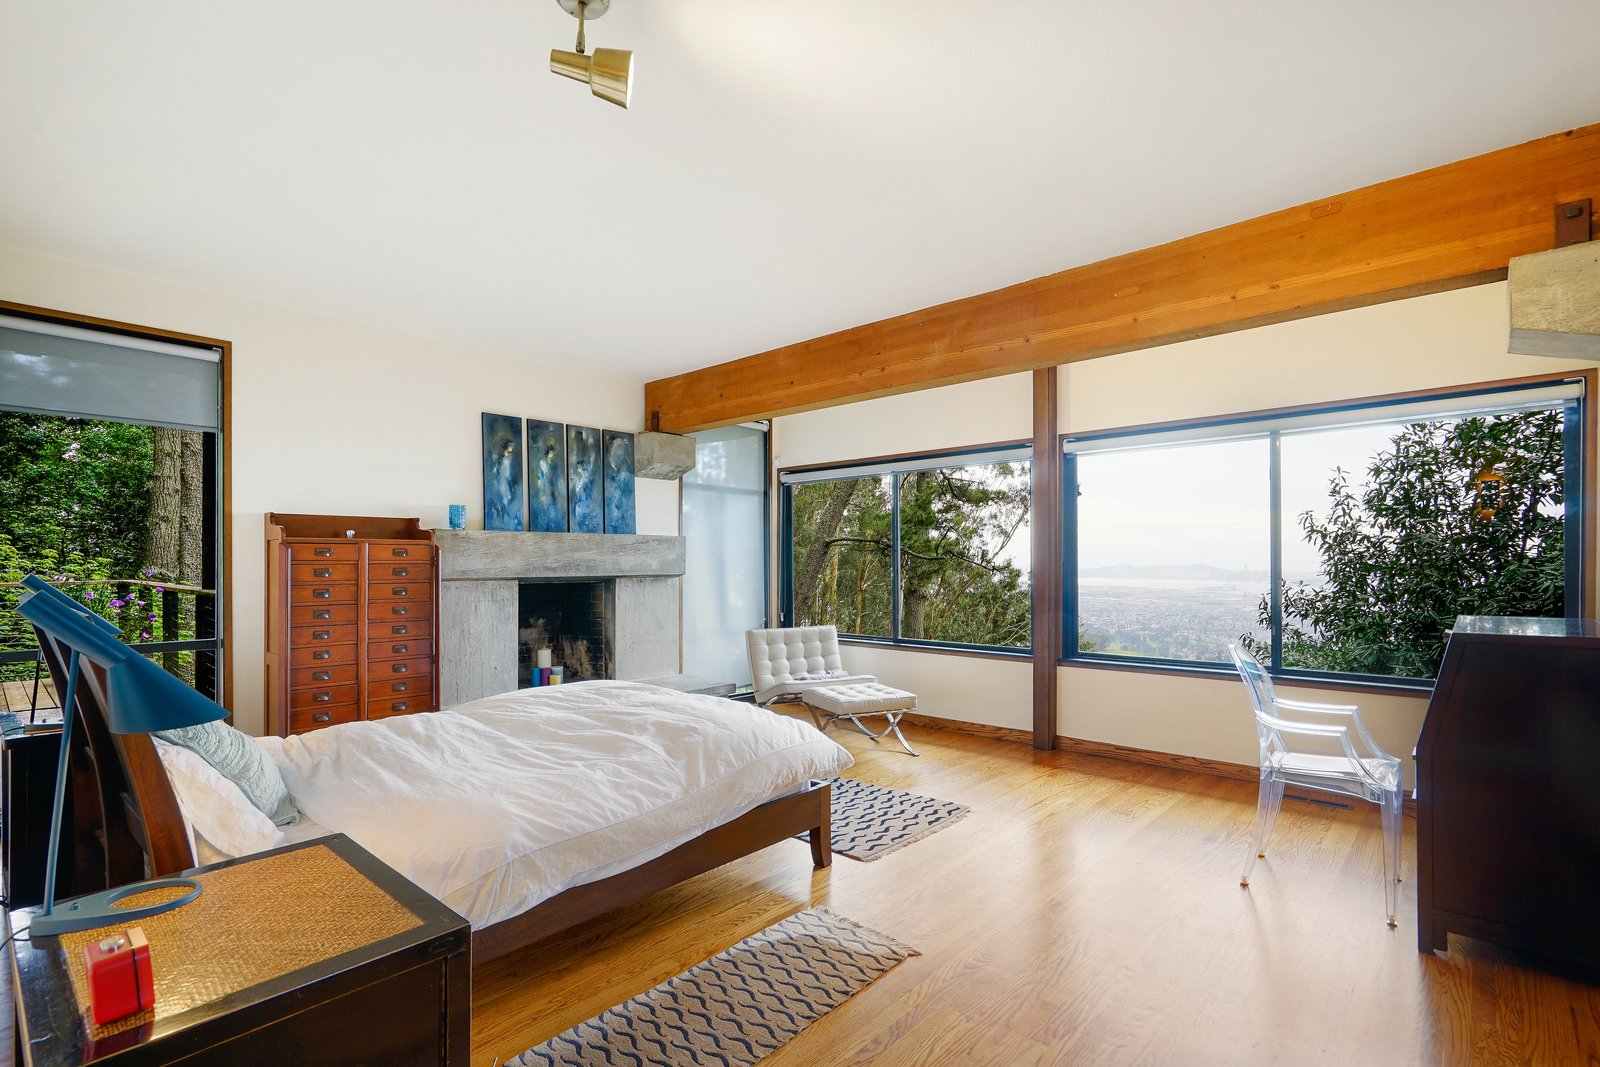 Bedroom, Ceiling Lighting, Medium Hardwood Floor, Bed, Dresser, Night Stands, Rug Floor, and Chair The master suite looks out onto the waters of the Bay.  Photo 12 of 17 in This Knockout Midcentury in the Bay Area Will Run You $1.9M